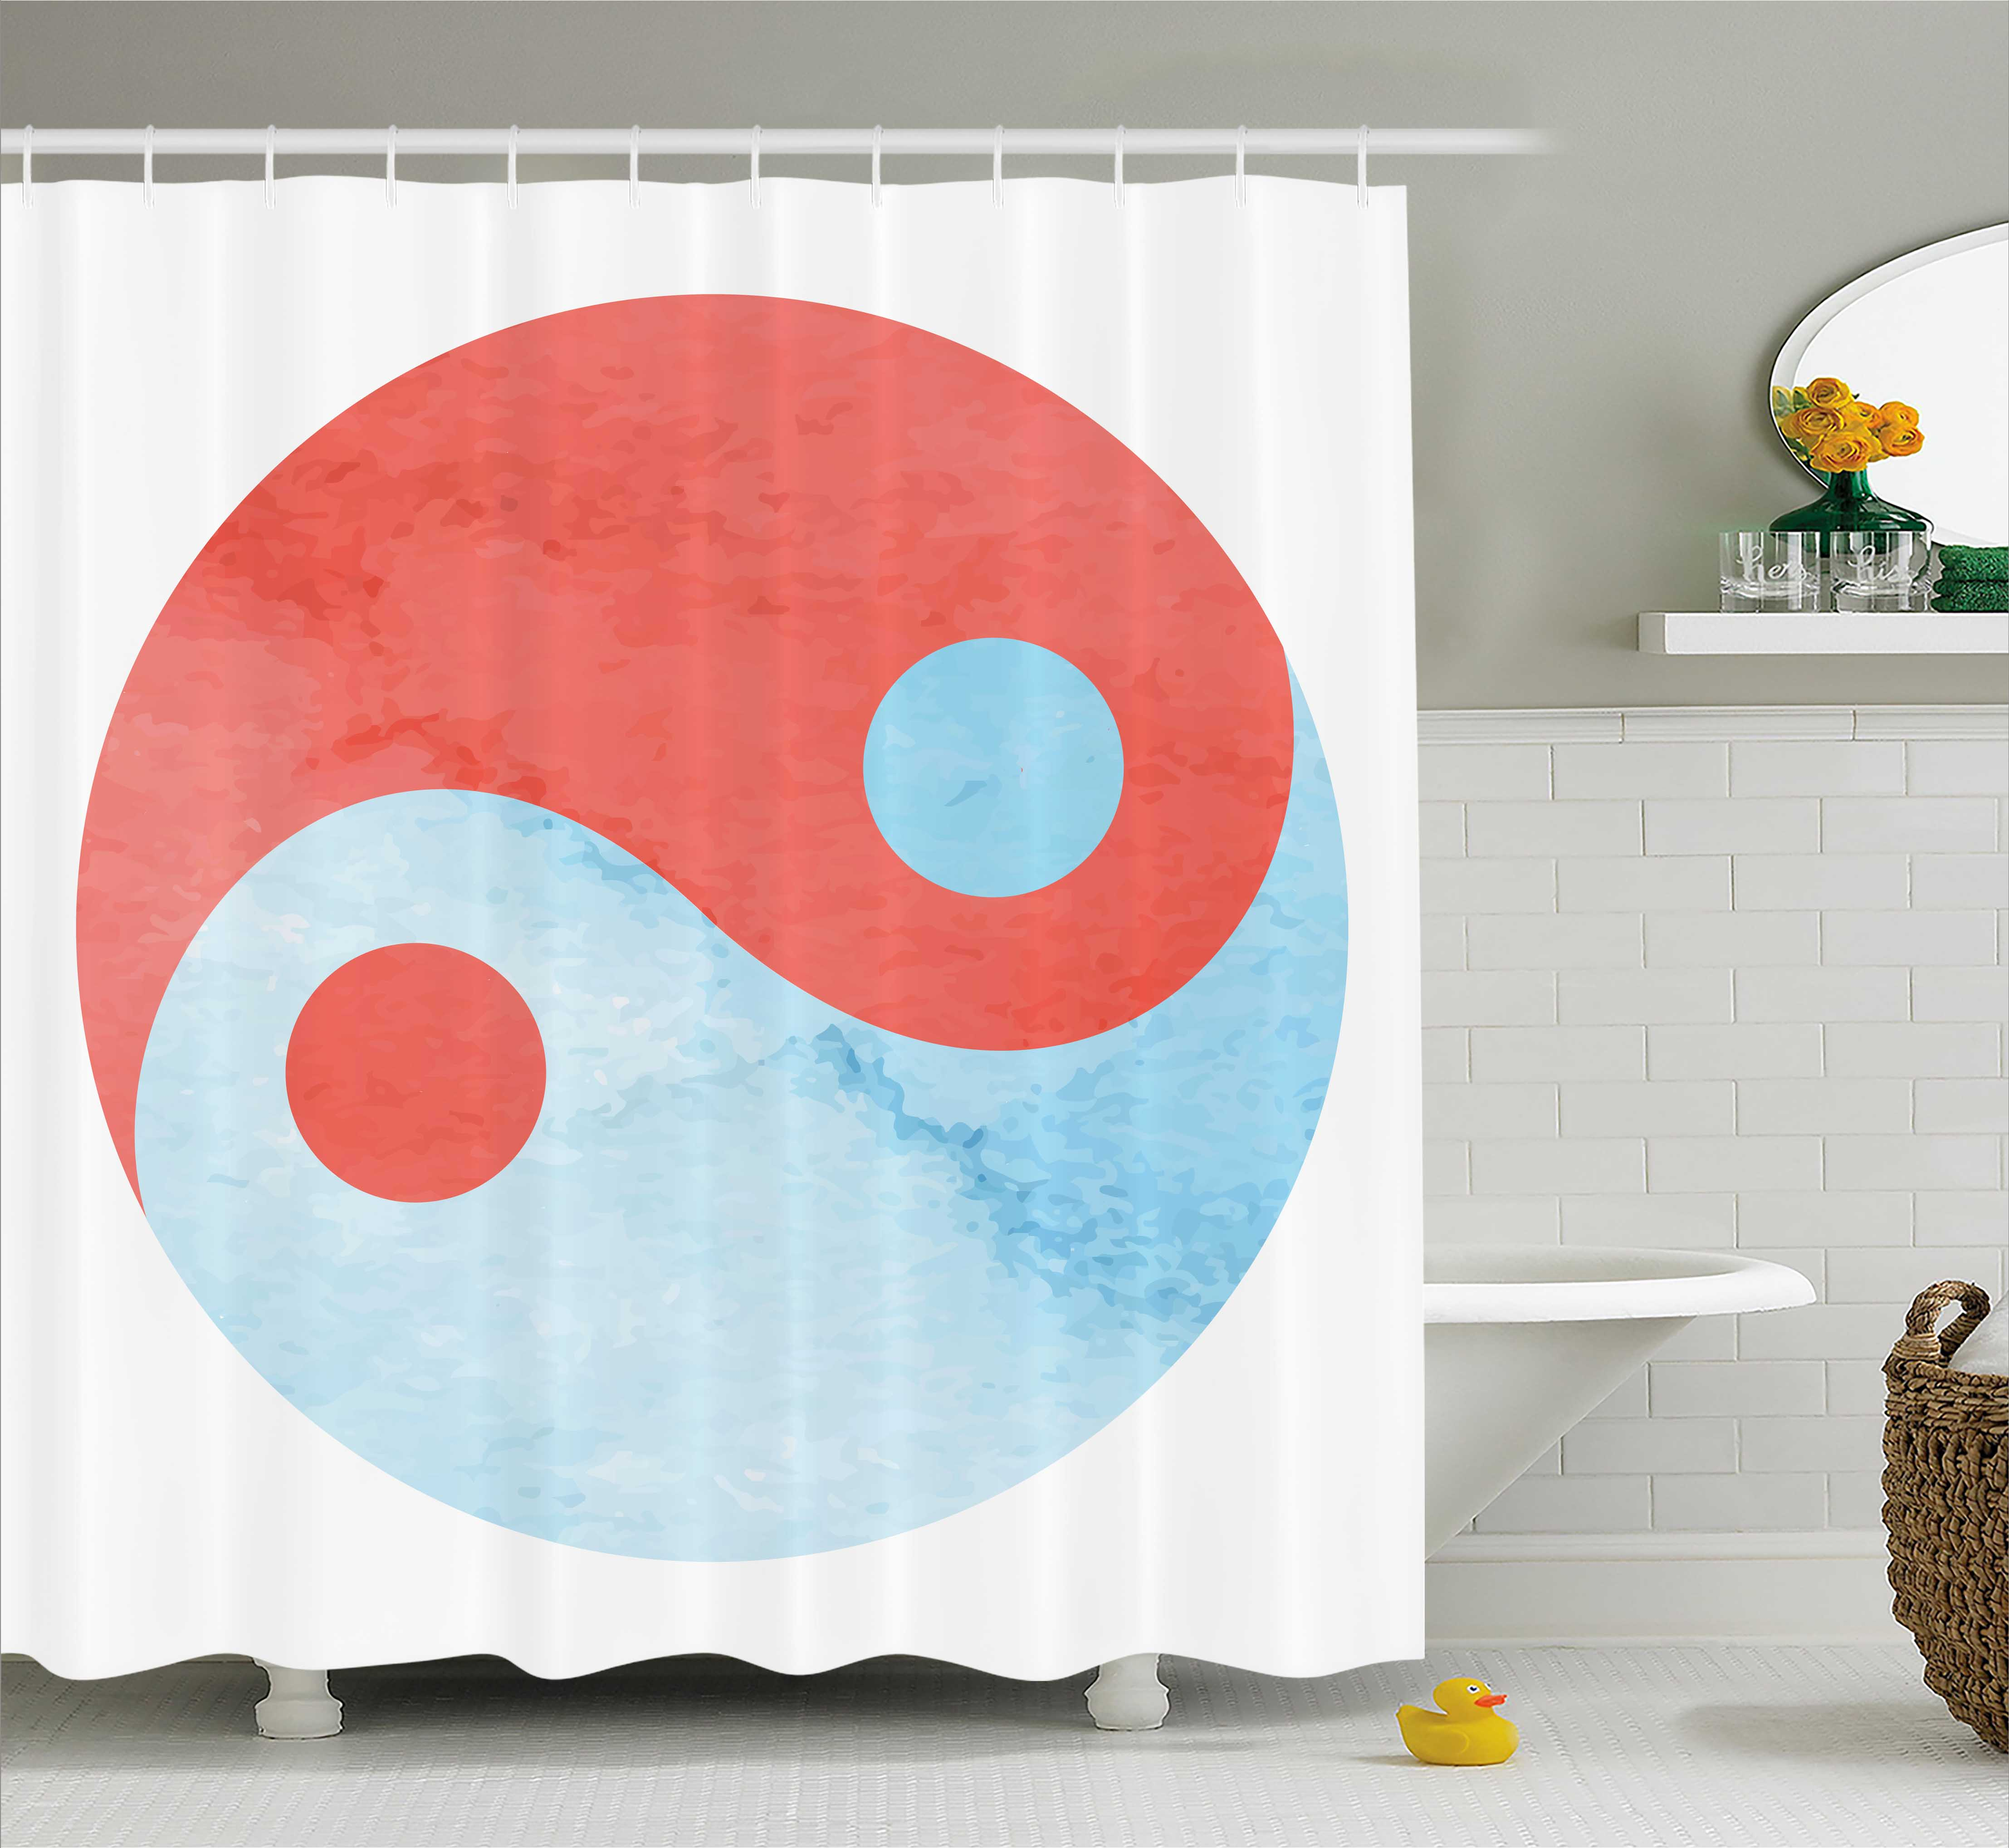 Ying Yang Decor Shower Curtain, Watercolor Asian Arts Culture Theme Zen Balance Harmony Abstract Art, Fabric Bathroom Set with Hooks, 69W X 70L Inches, Red Blue White, by Ambesonne